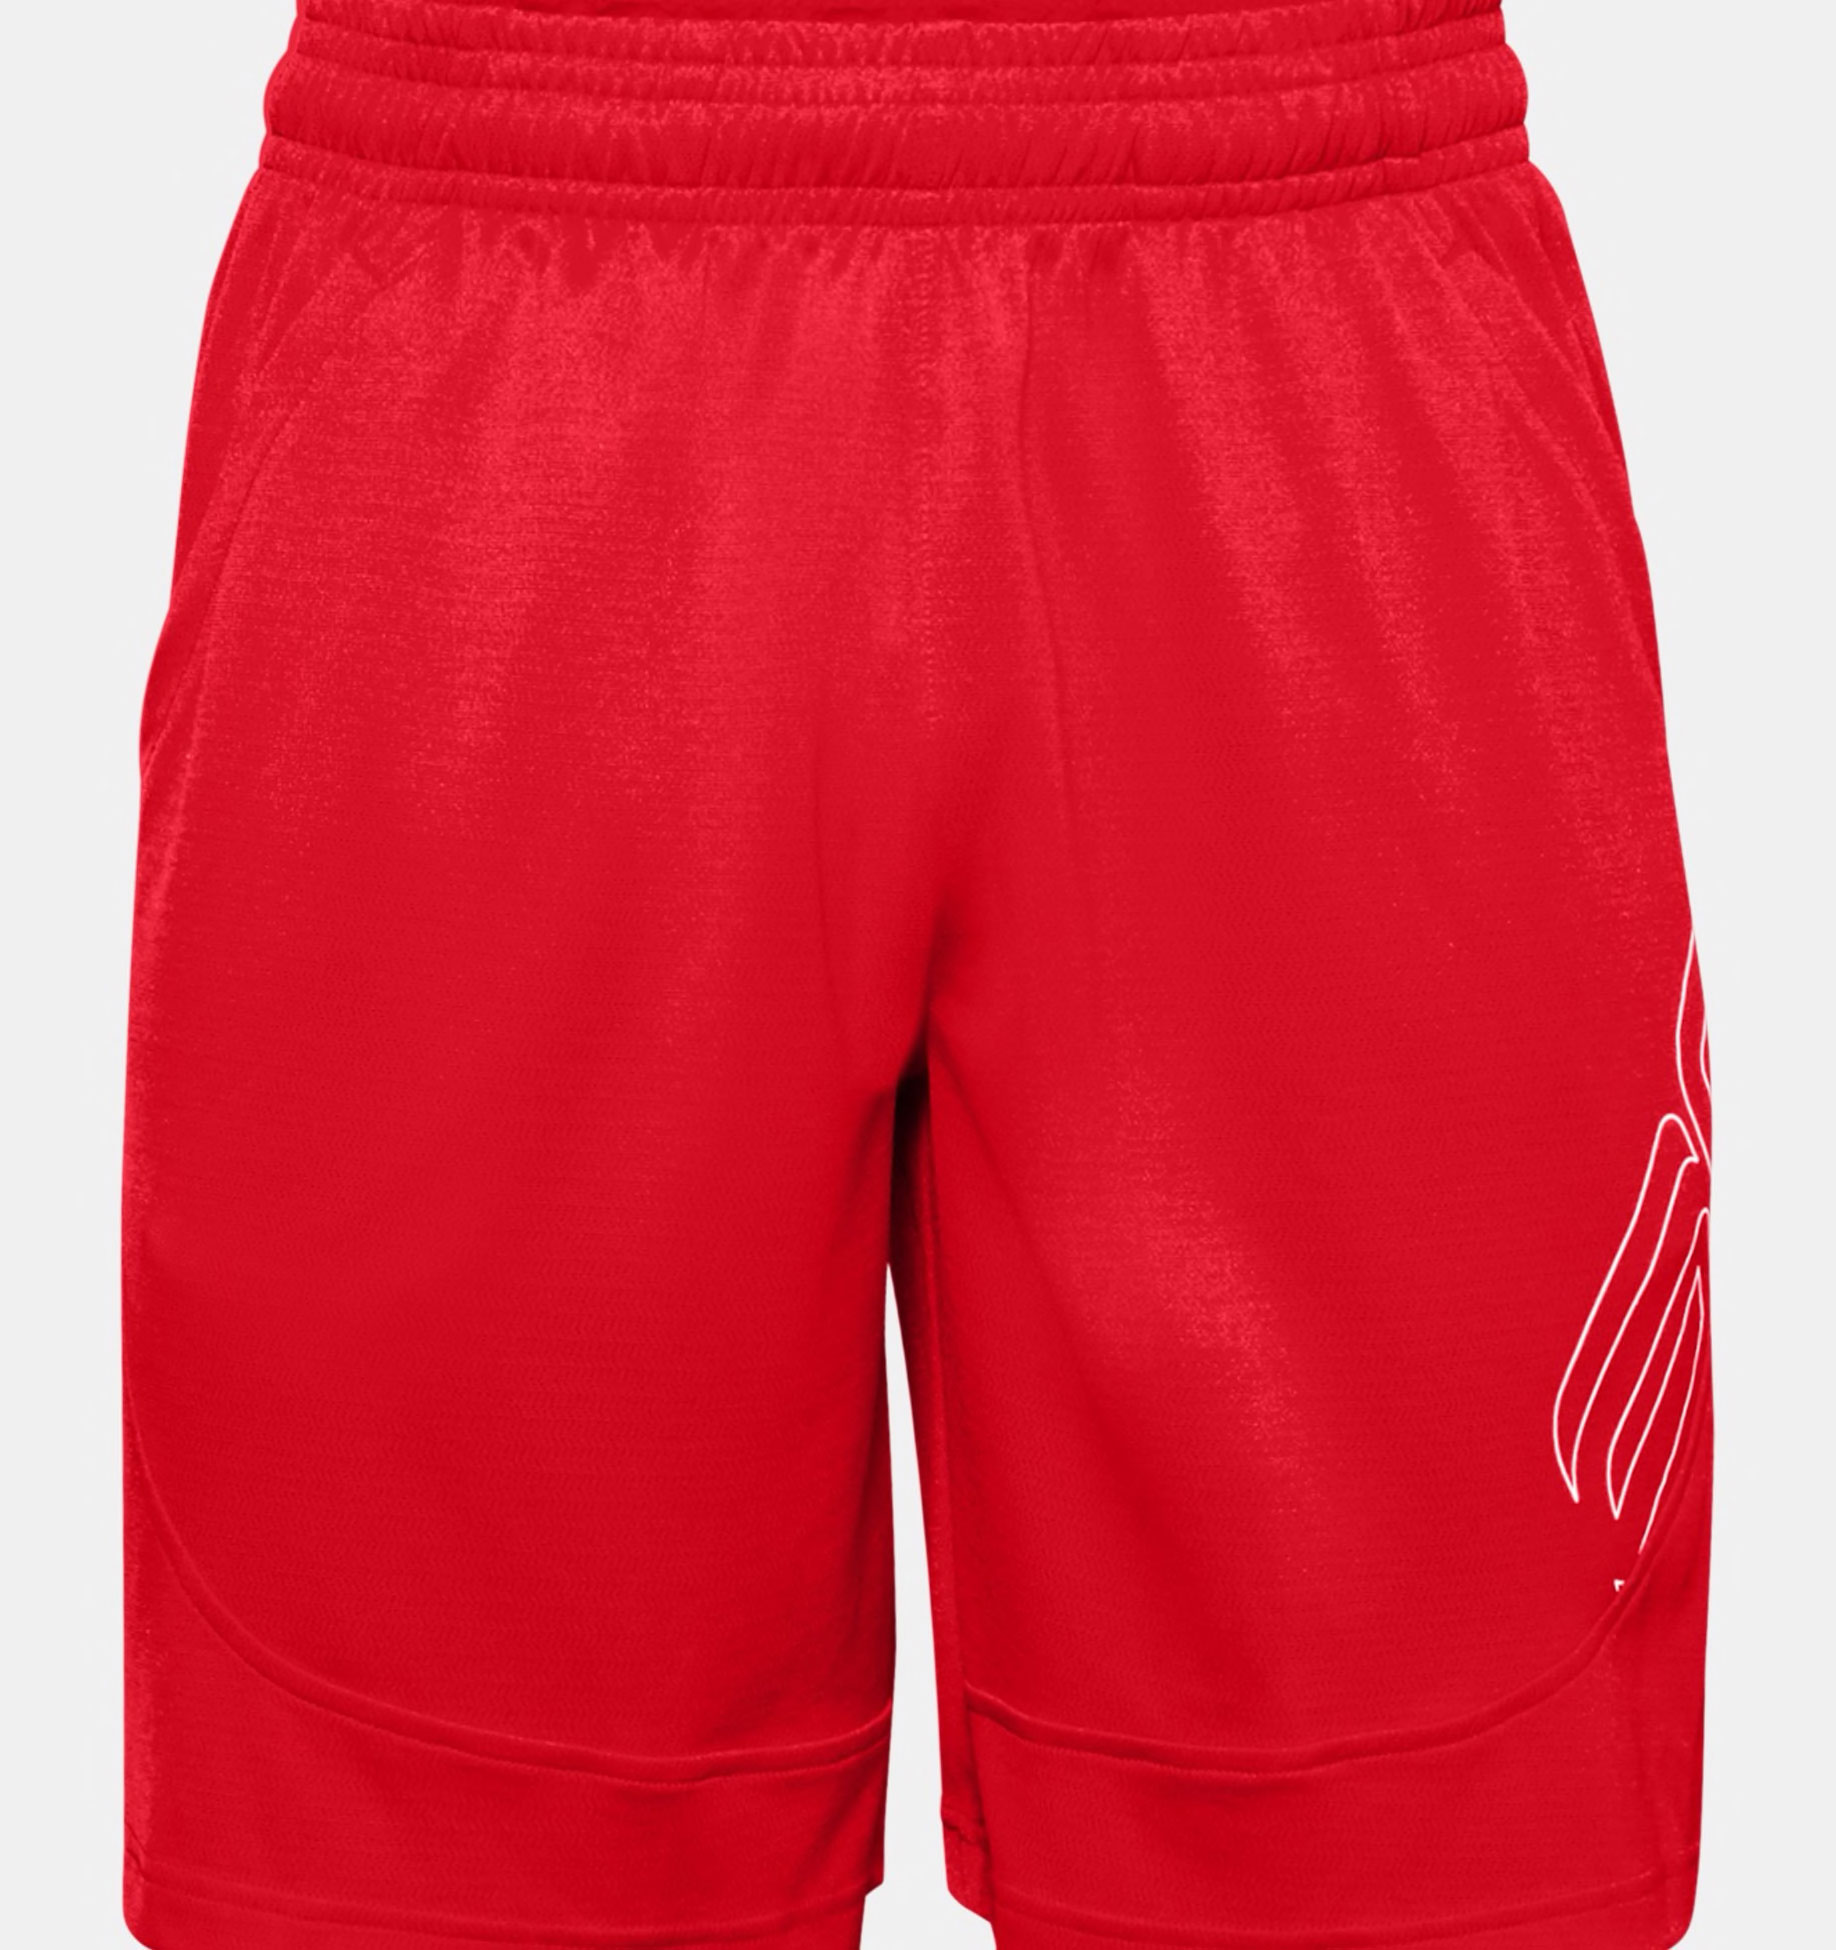 curry-8-red-shorts